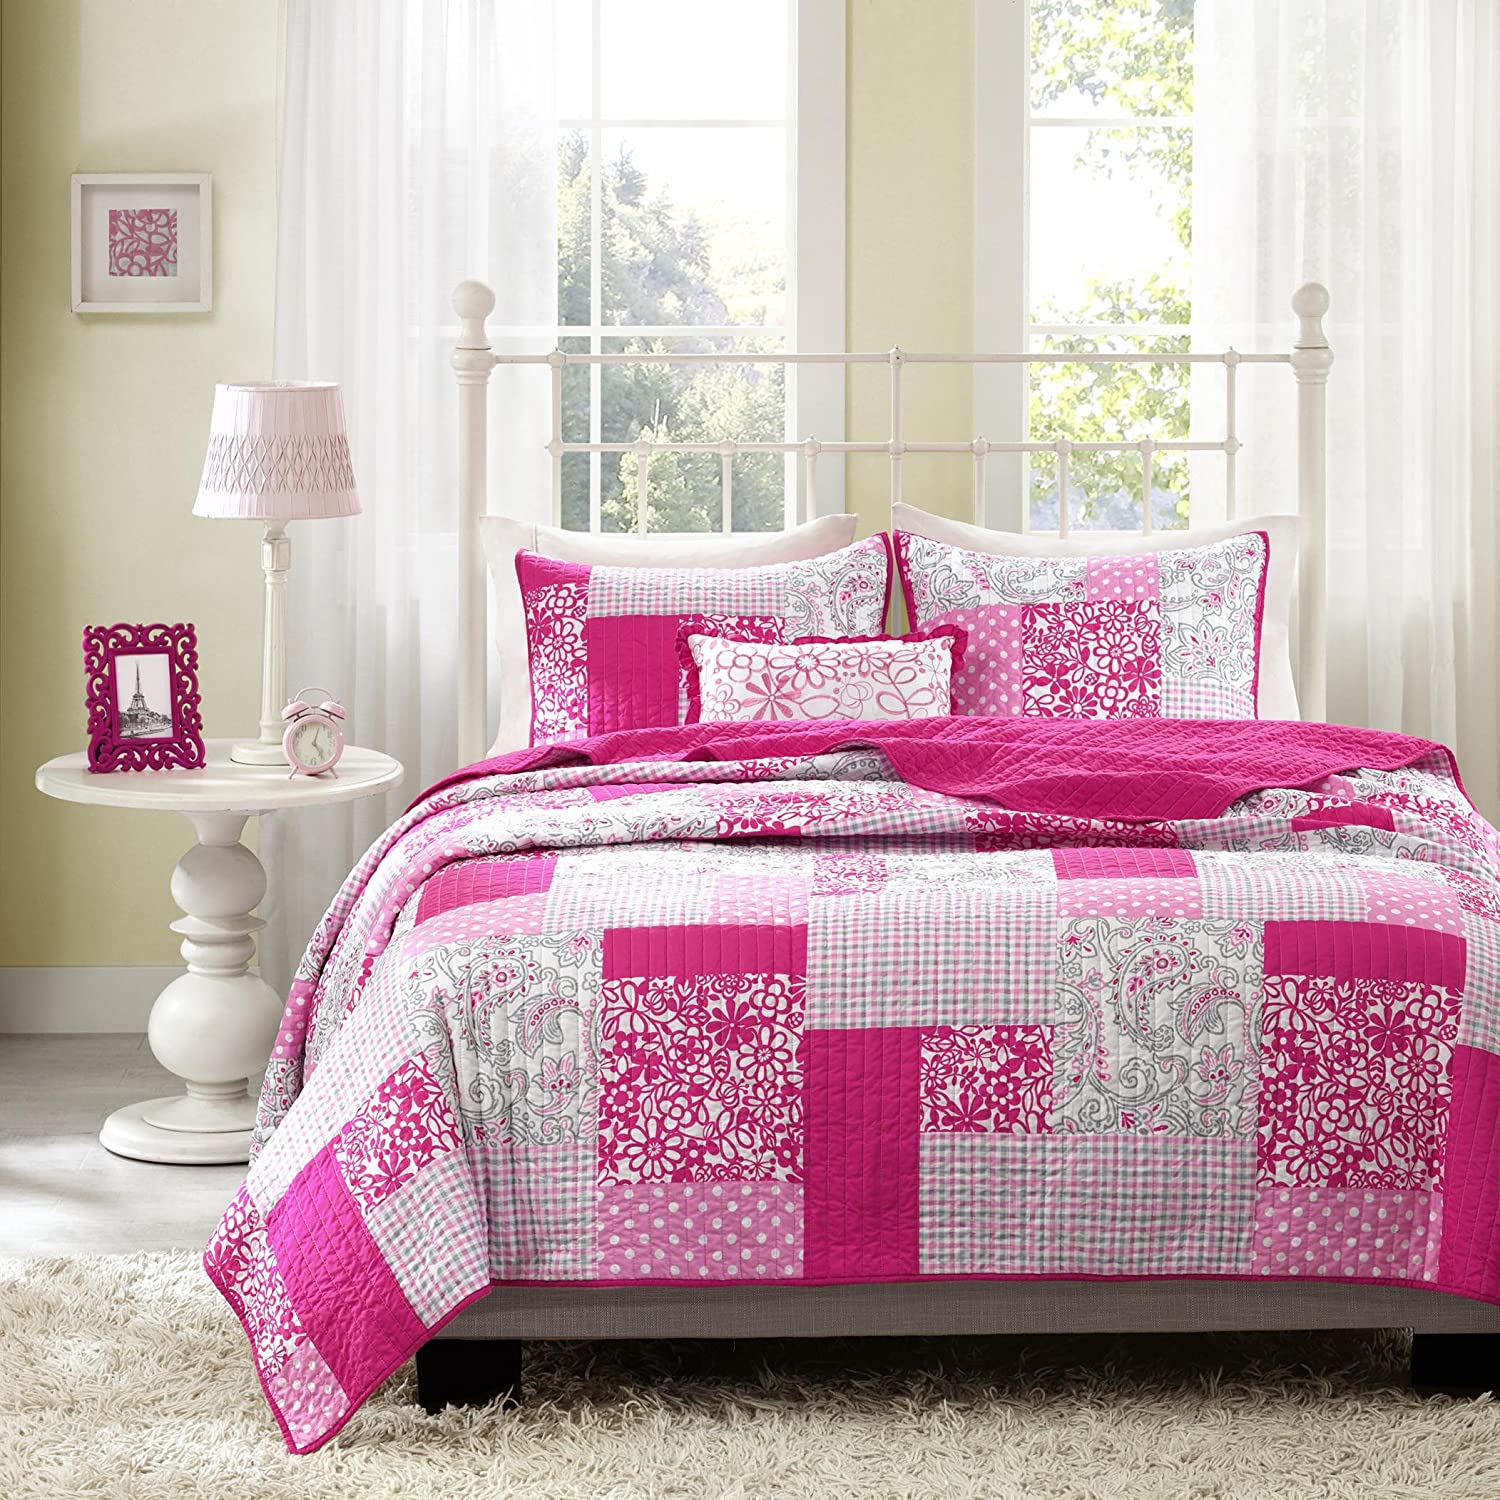 Mizone Comforter Bedding Set